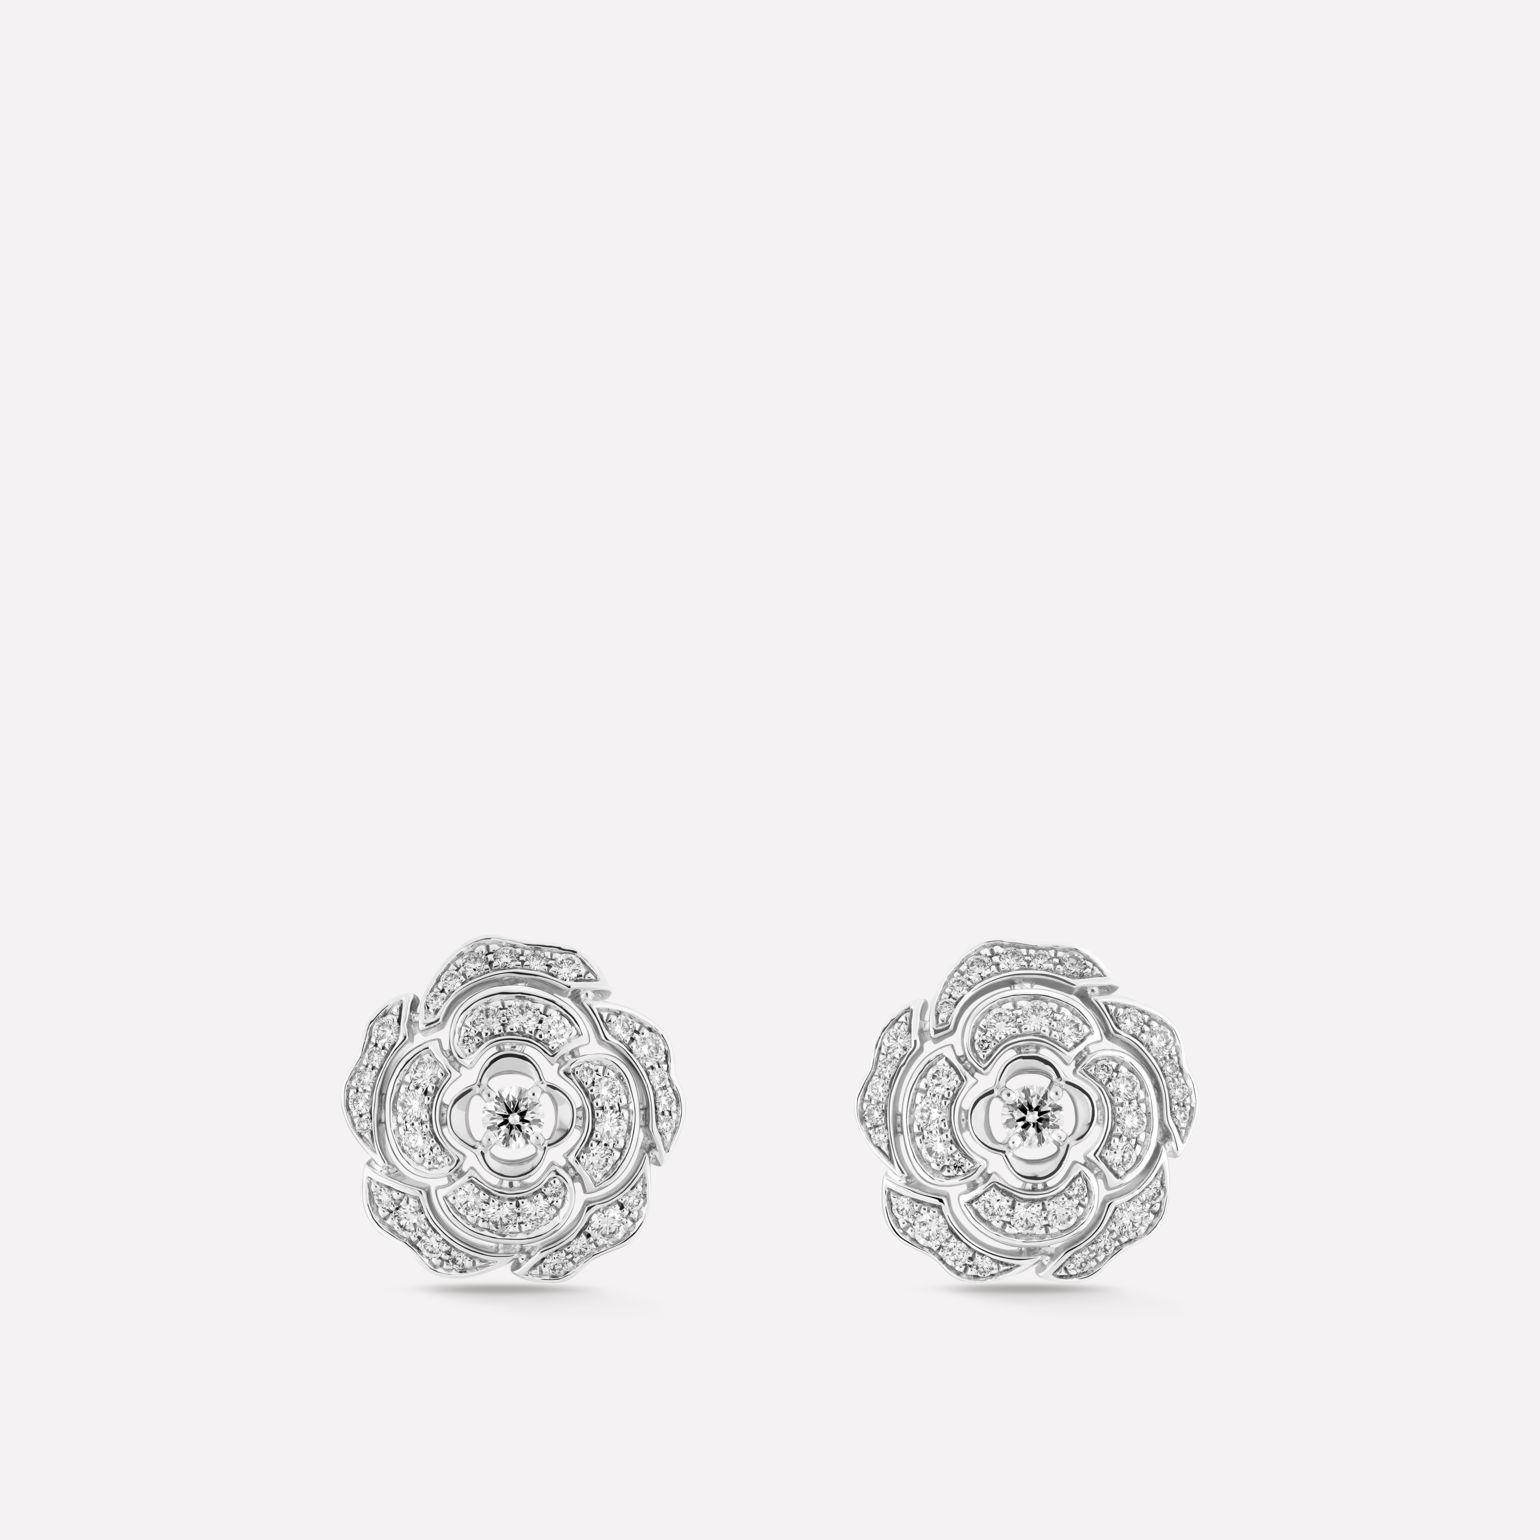 a chandelier earrings xl vizcaya product zoom bhldn jewellery in silver bride